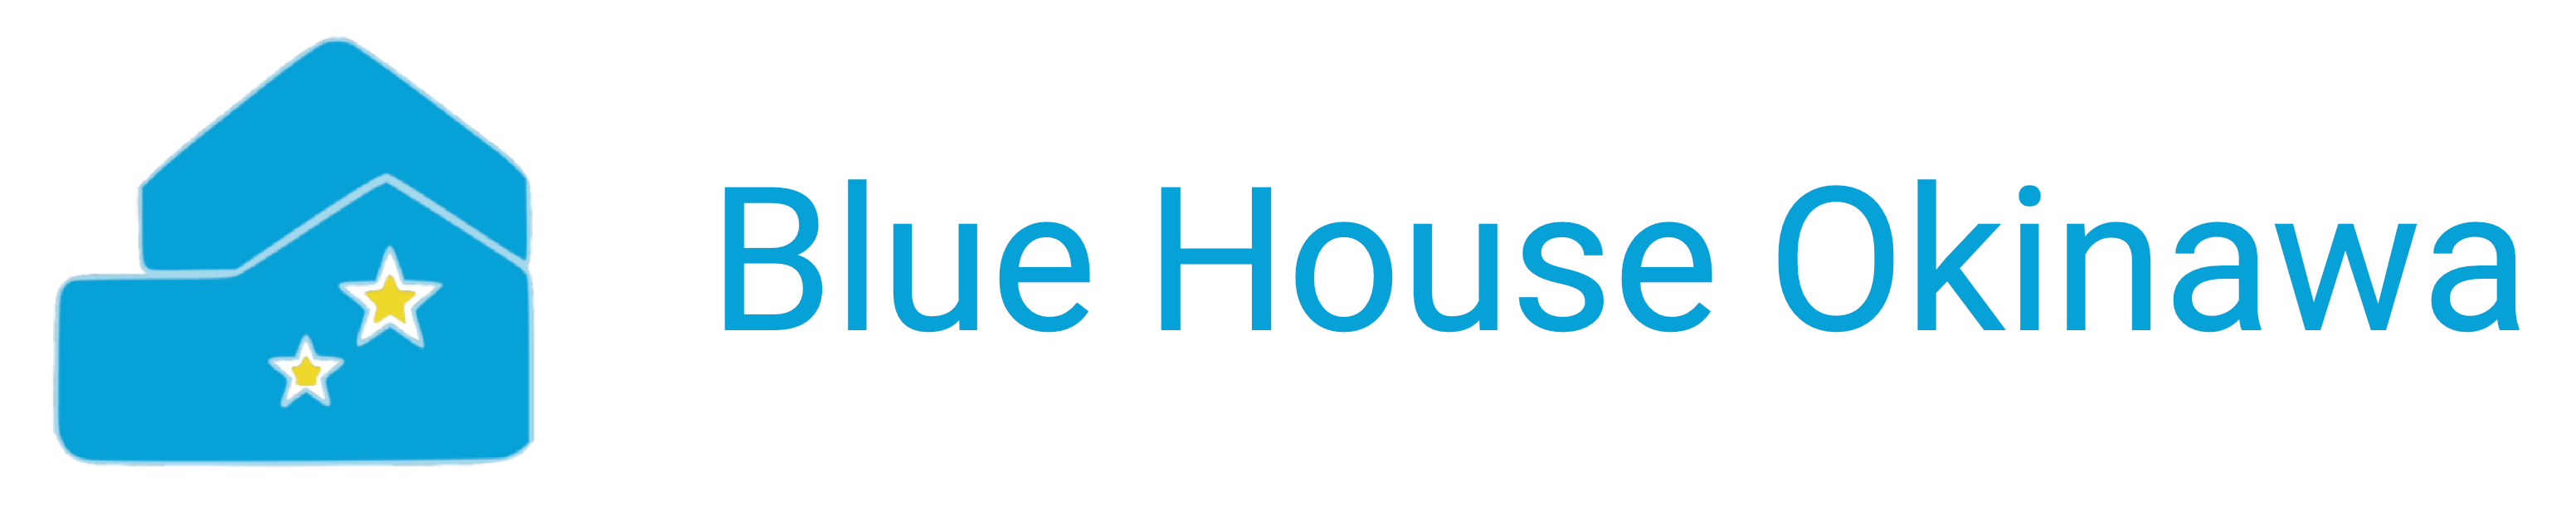 Blue House Okinawa Logo with Text